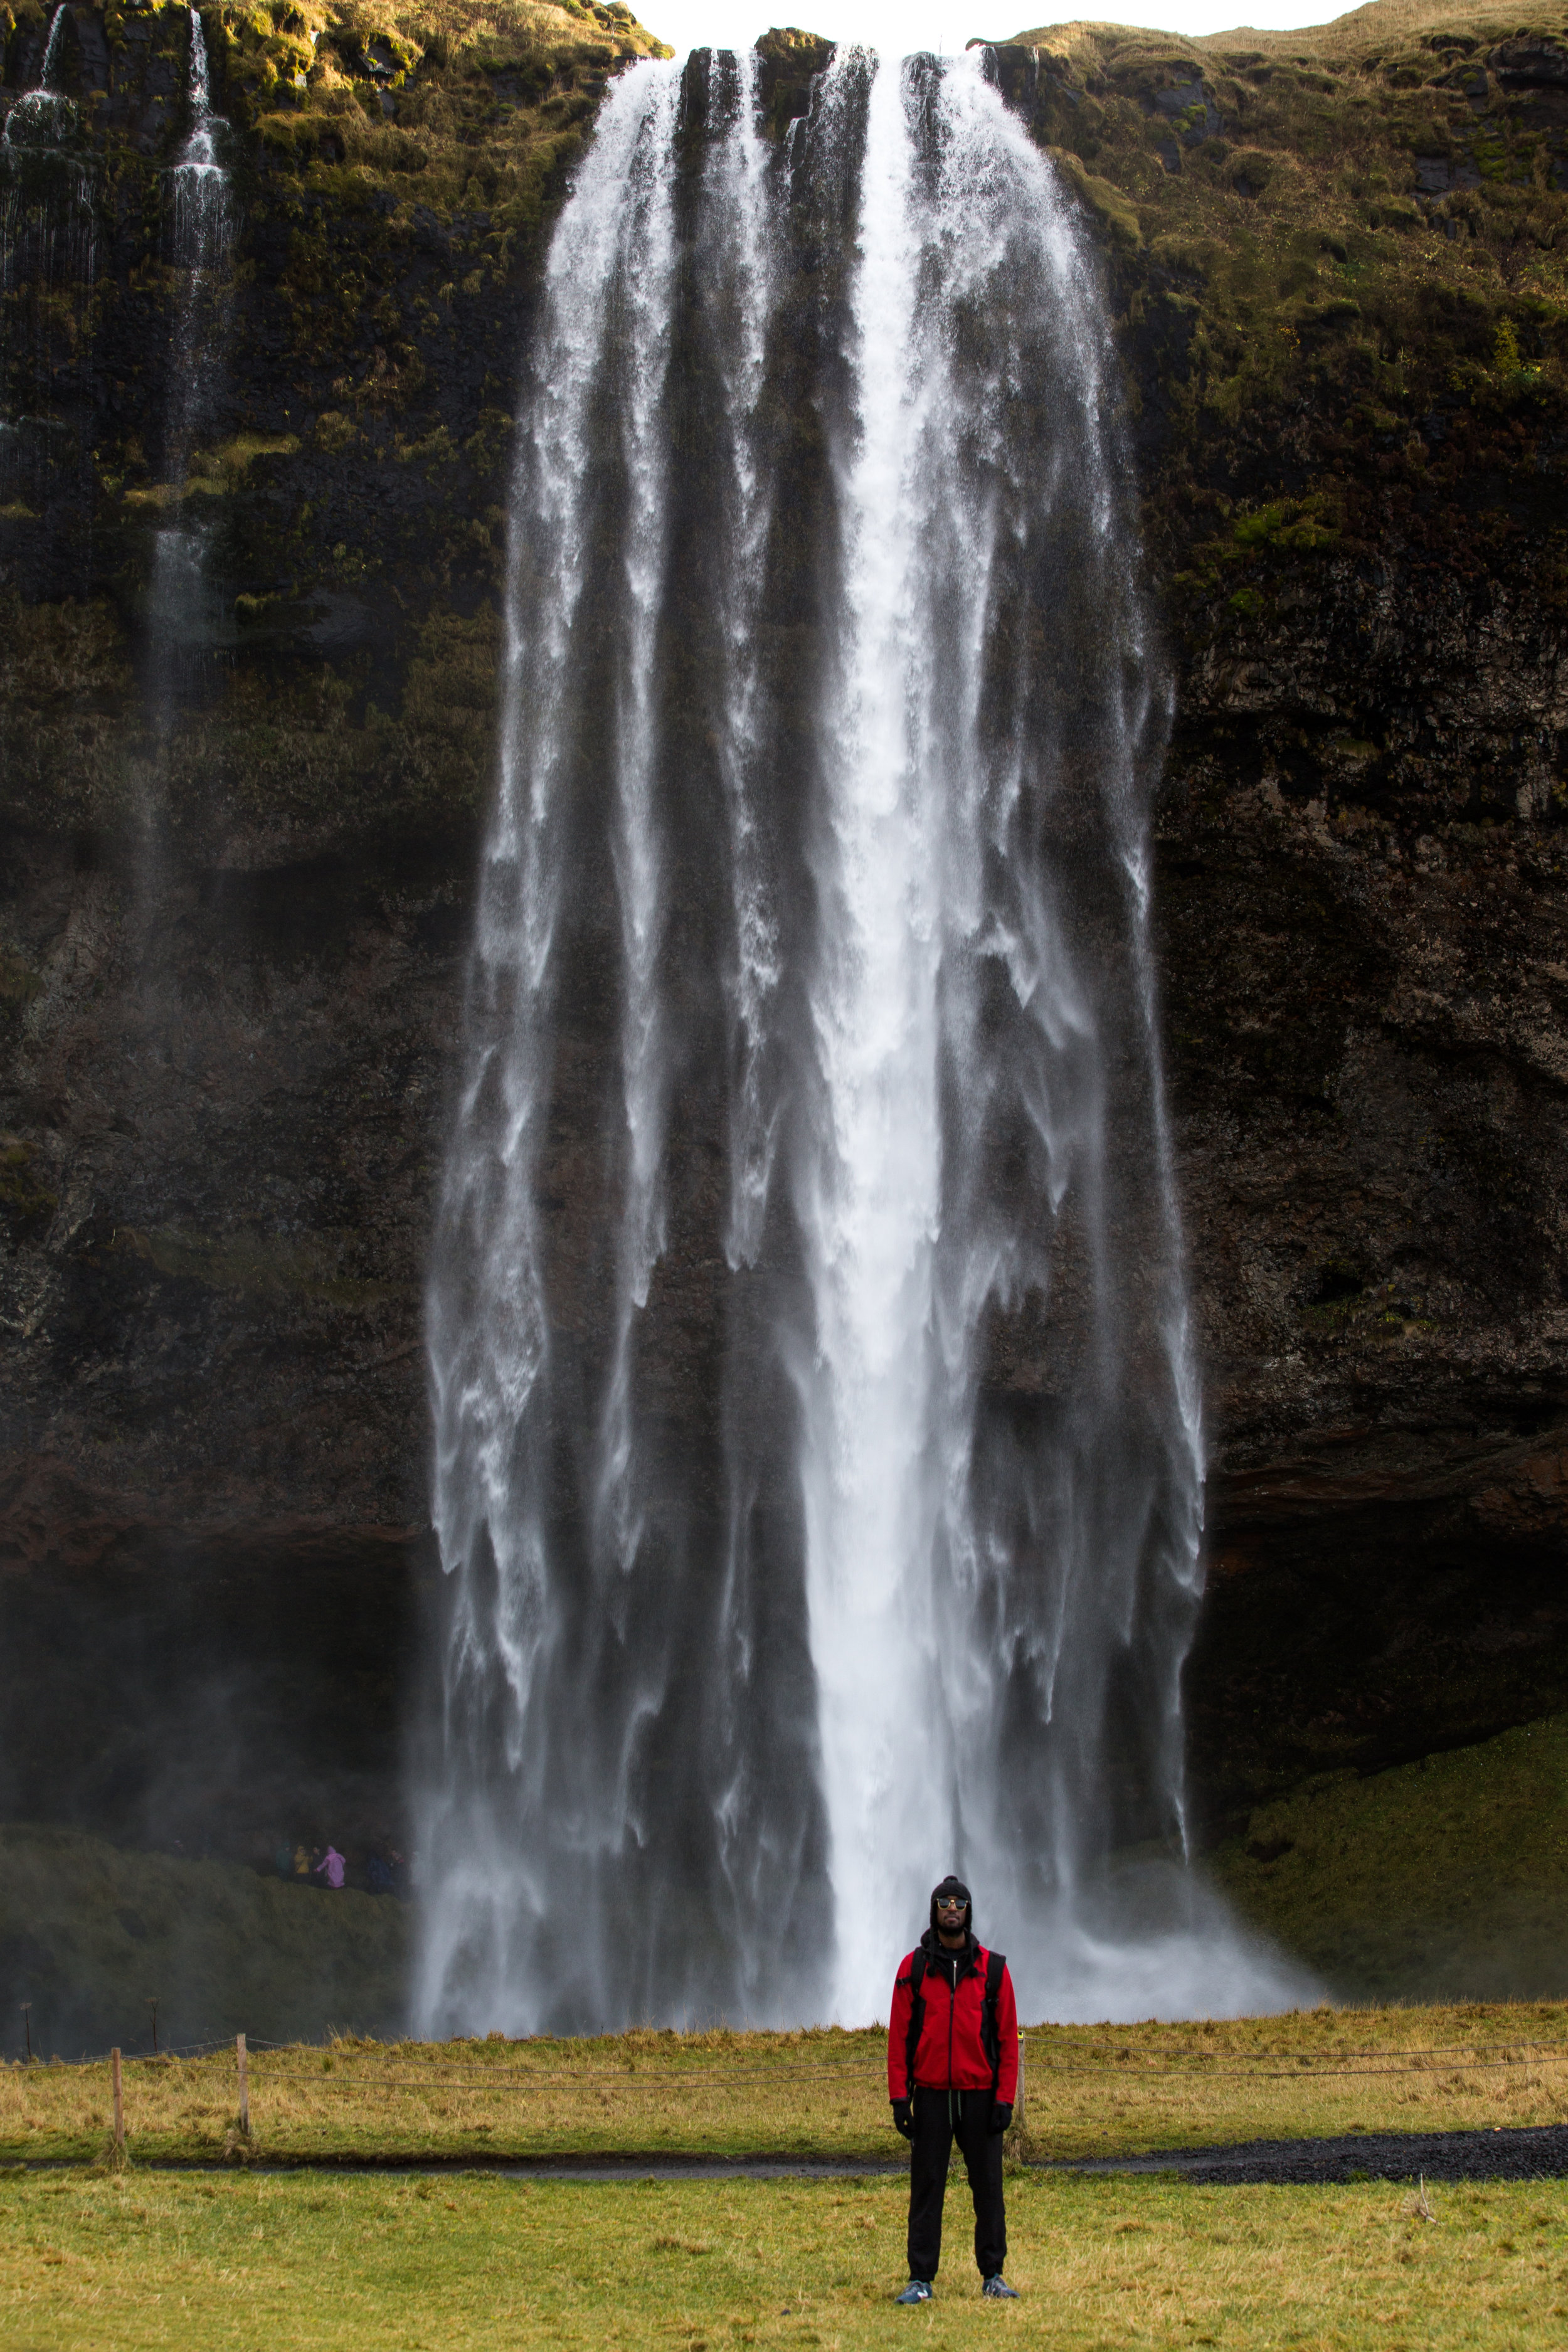 Giants standing among giants. Seljalandsfoss is a 60 meter waterfall that is part of the Sejalands River. Born from the volcanic glacier Eyjafjalla, it's normally know as the waterfall that you can walk behind through a carved mountain wall.